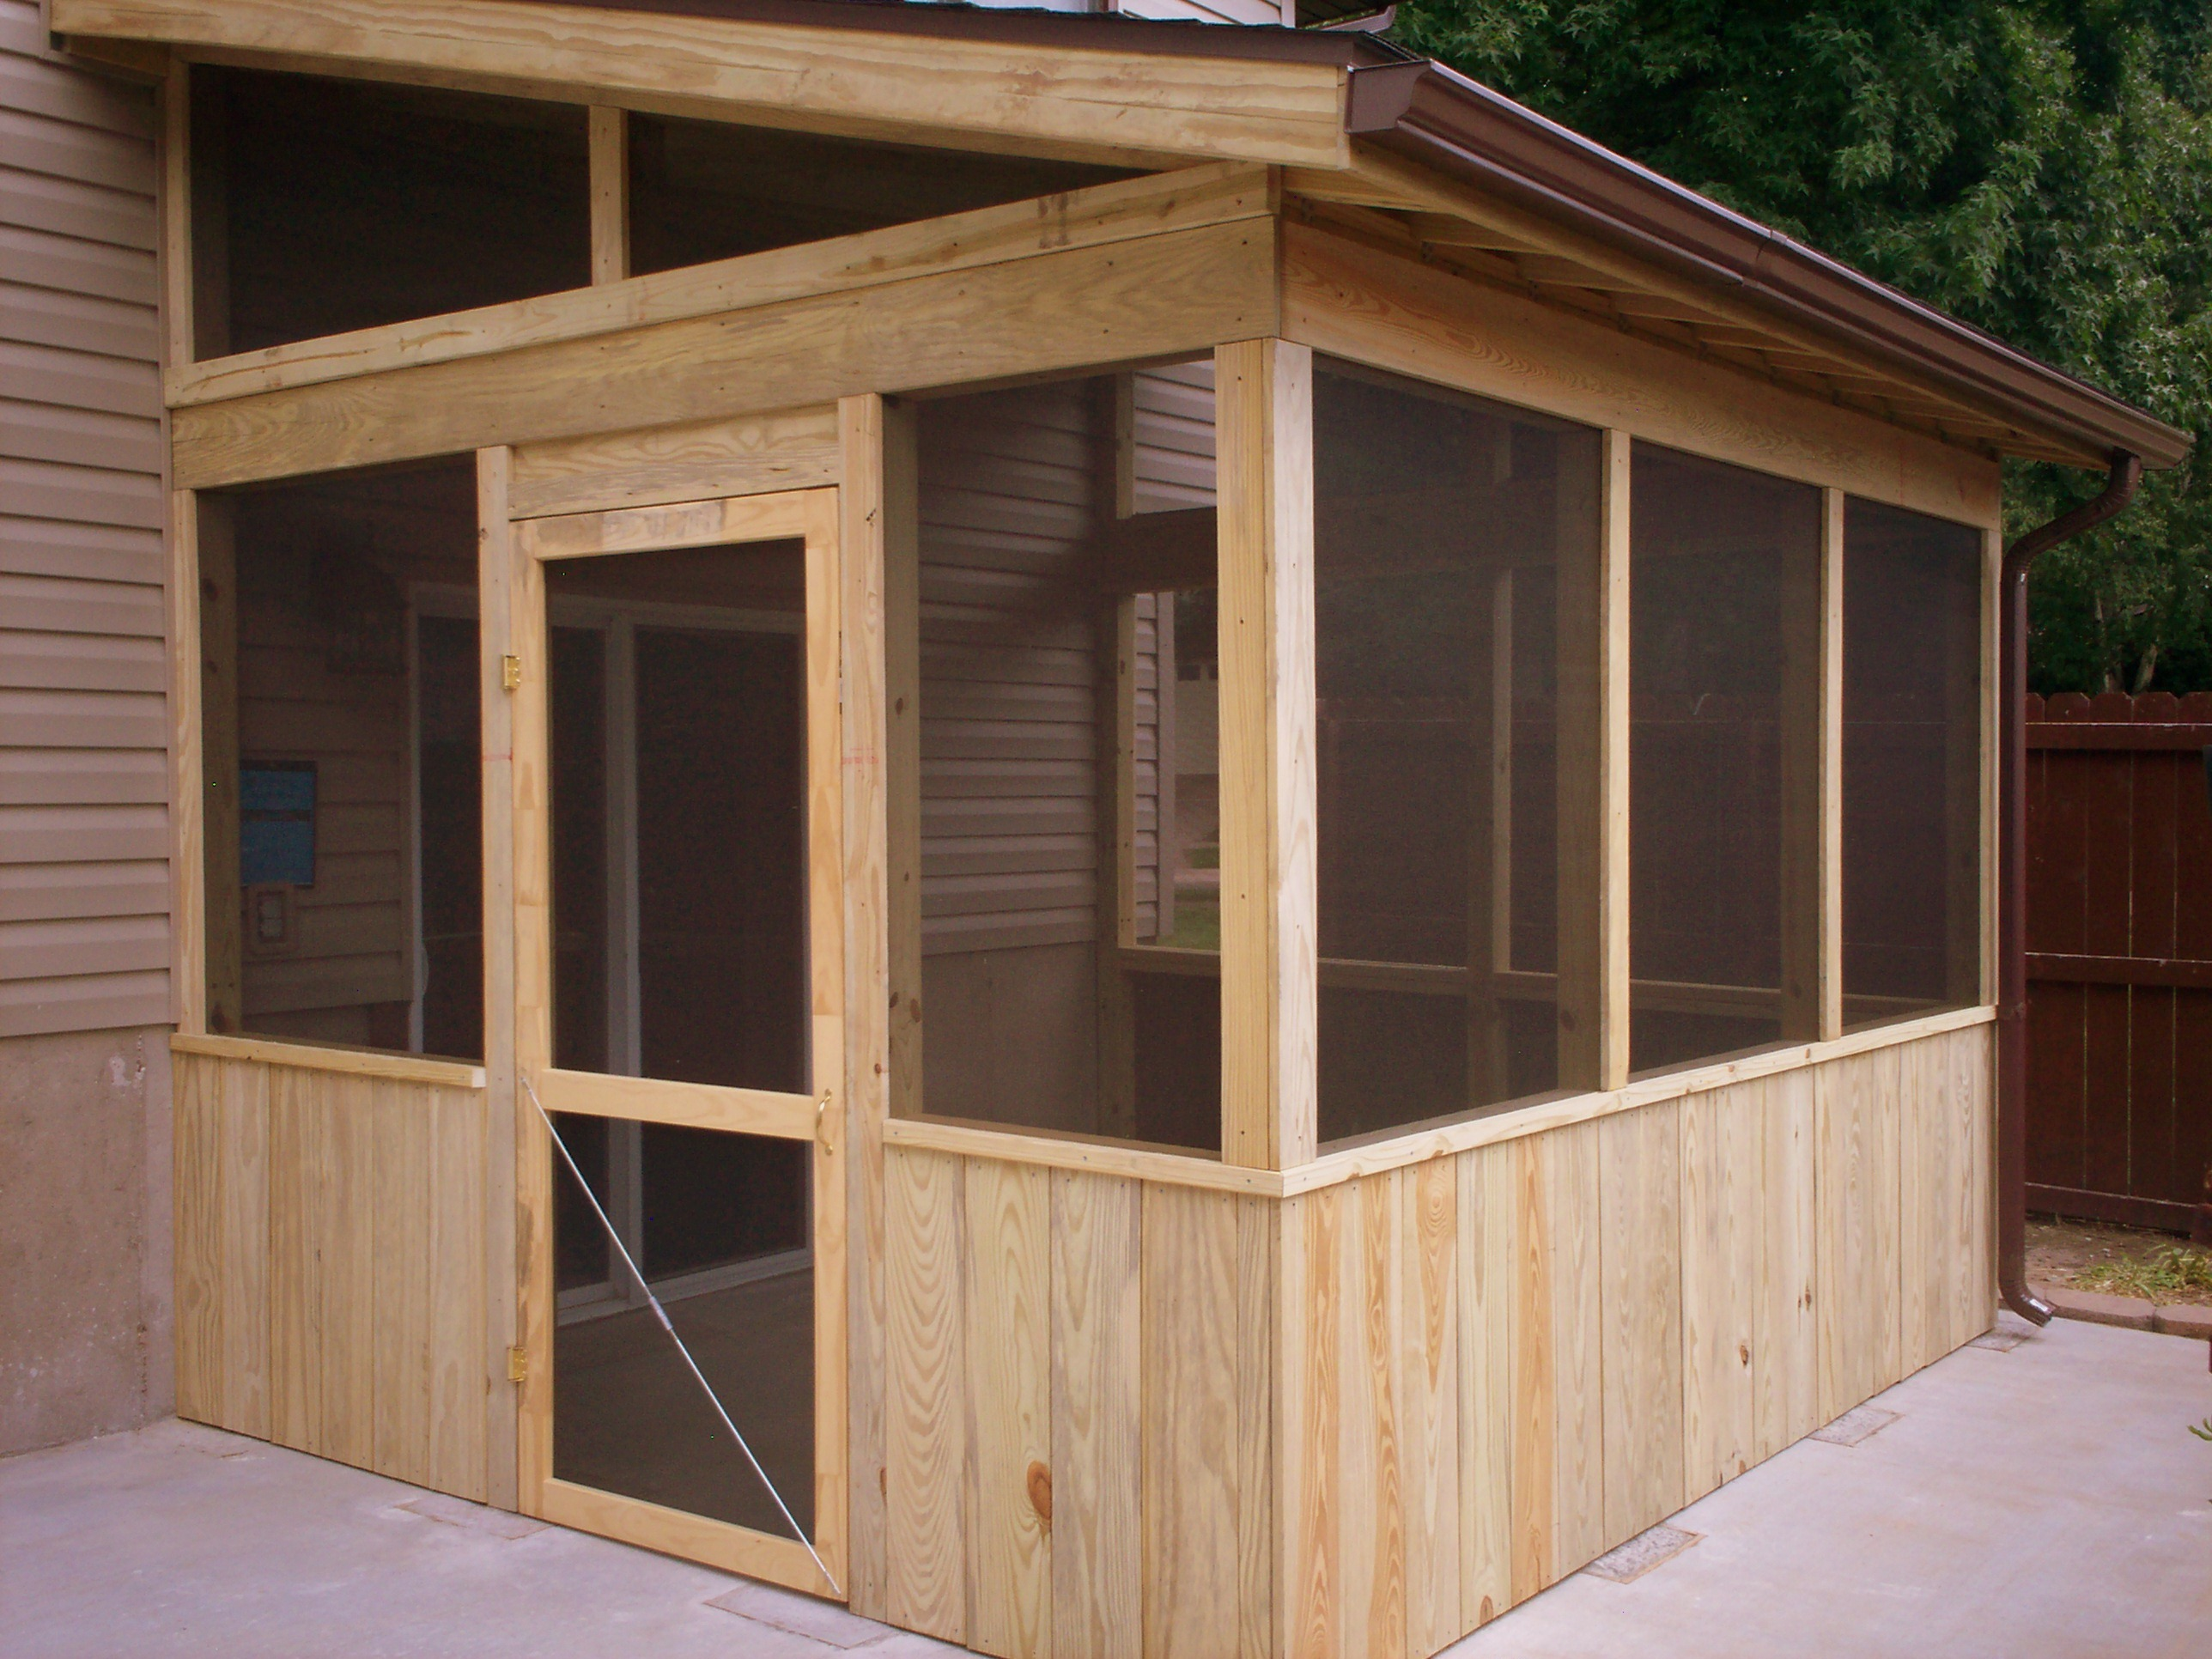 Screen House Shed Plans Plans 8 x 10 shed kit | PDF Wood